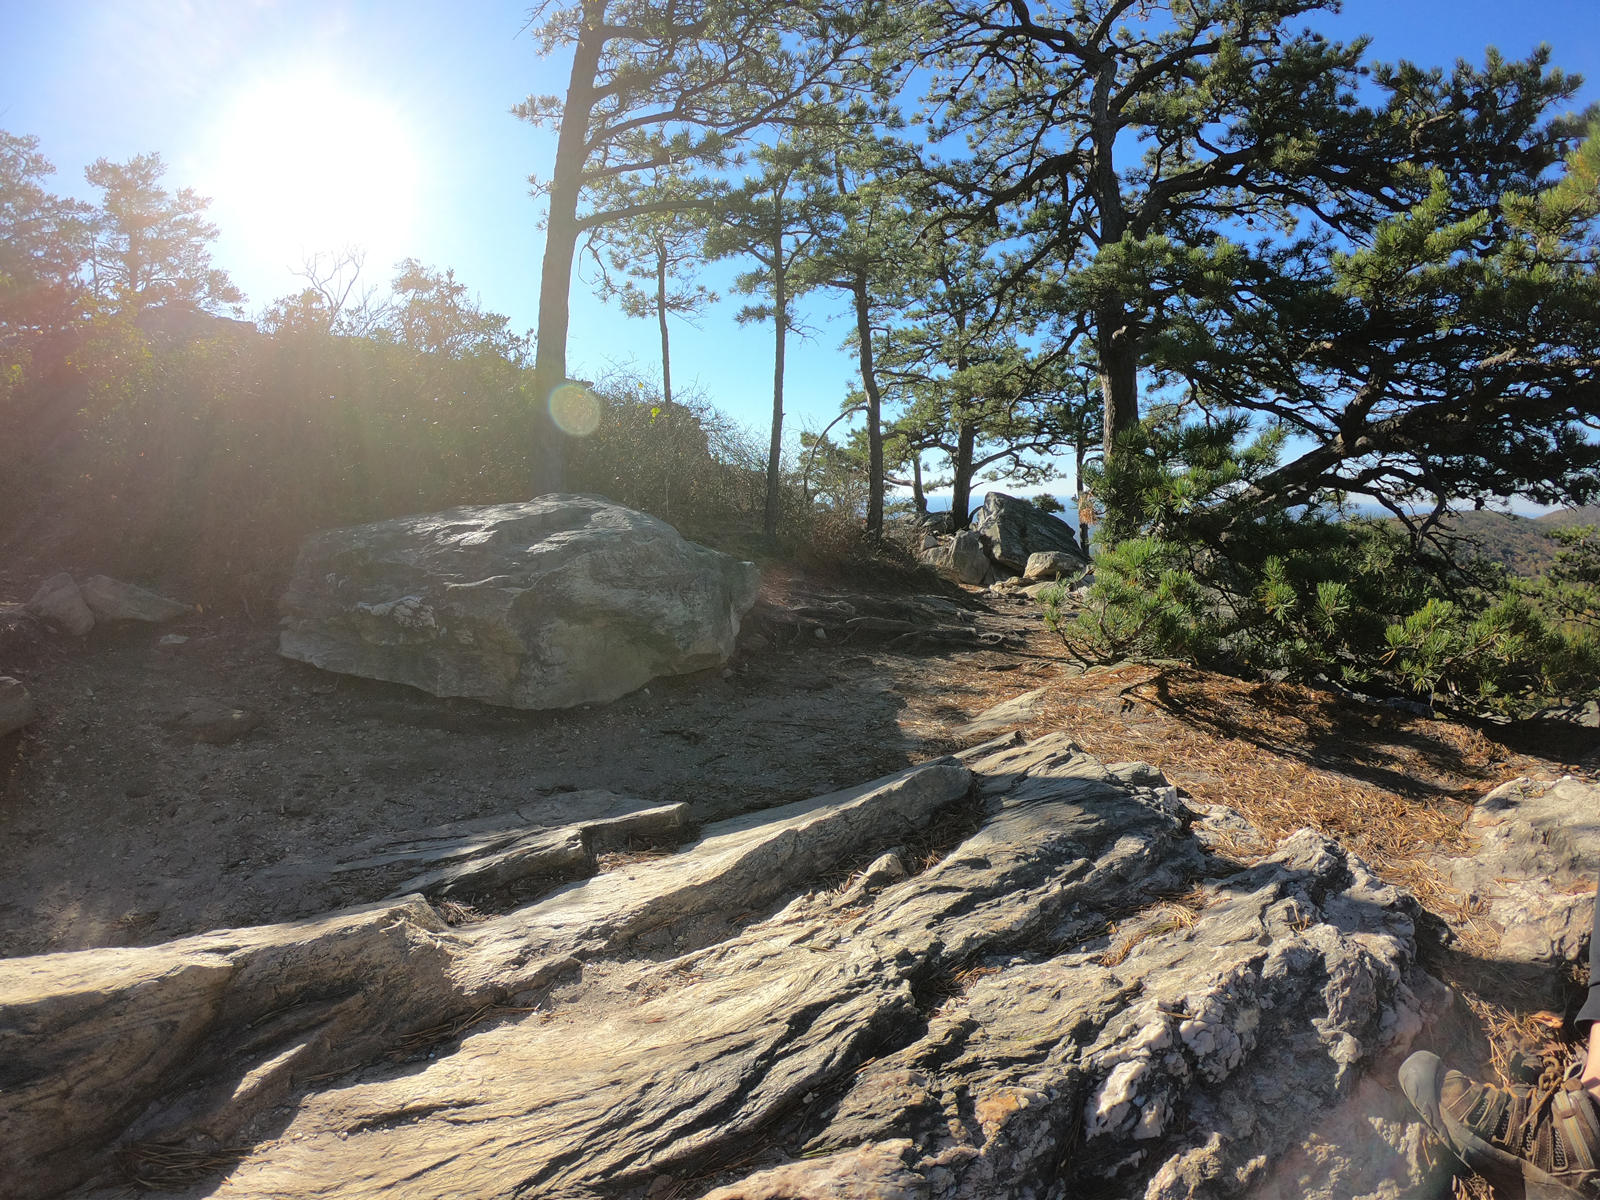 Hiking a rocky trail in Hanging Rock State Park, North Carolina